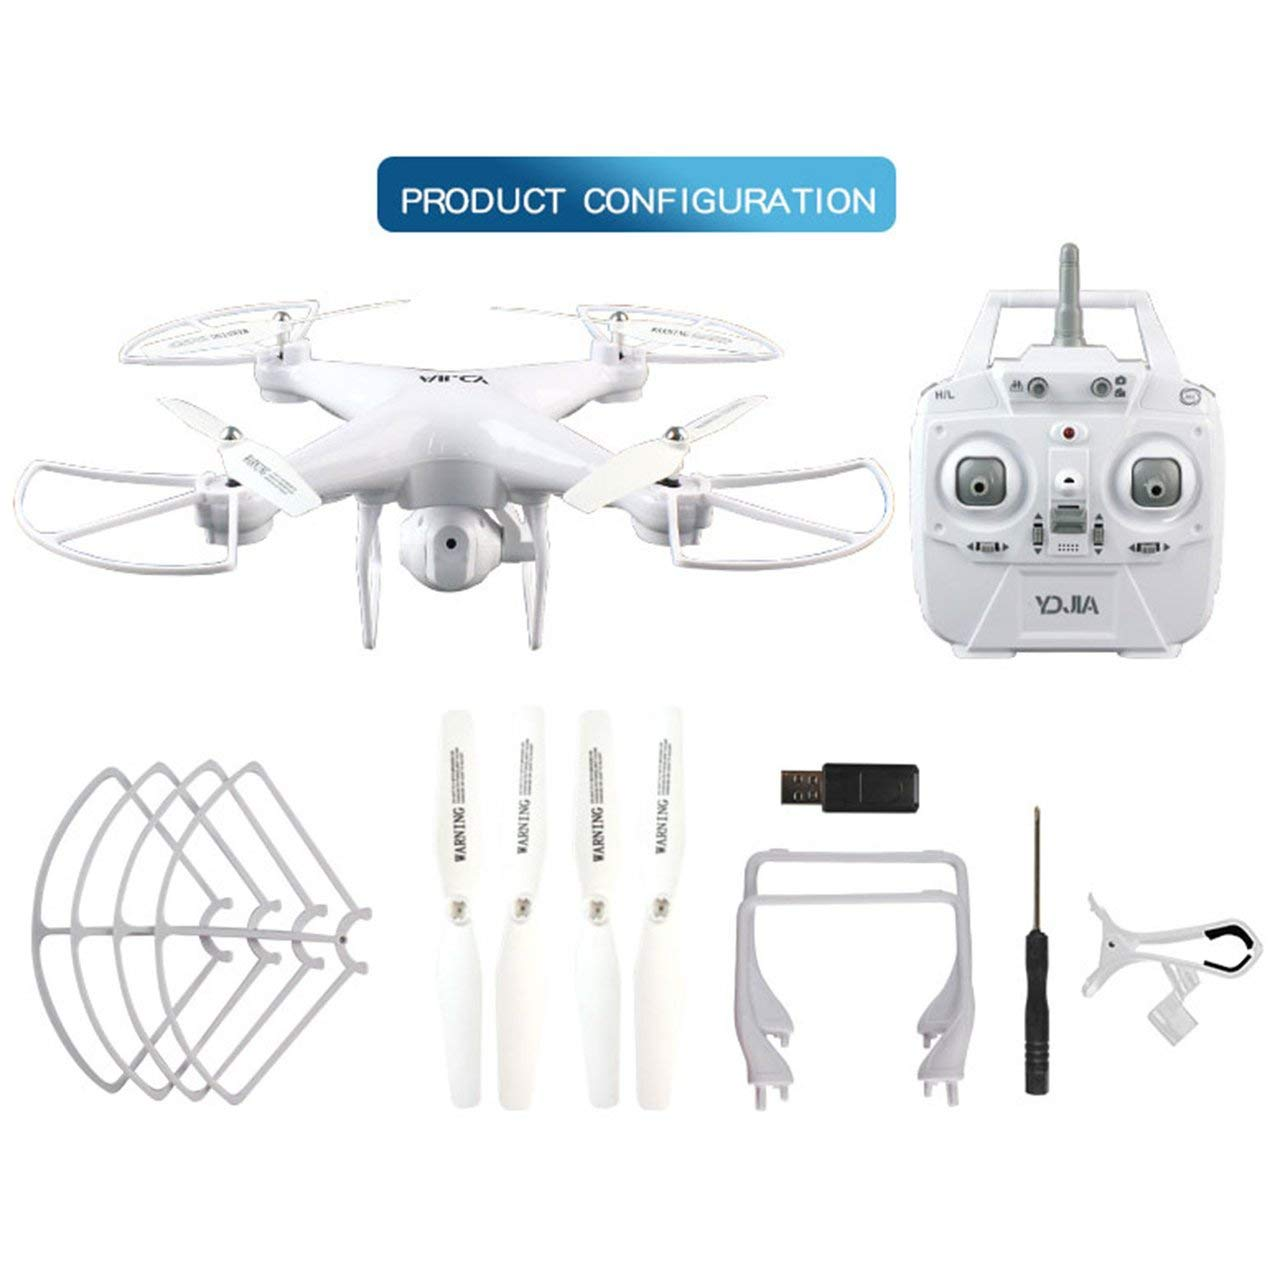 Redstrong D68W-3 720P HD WiFi Camera FPV RC Drone with Altitude Hold Headless Mode